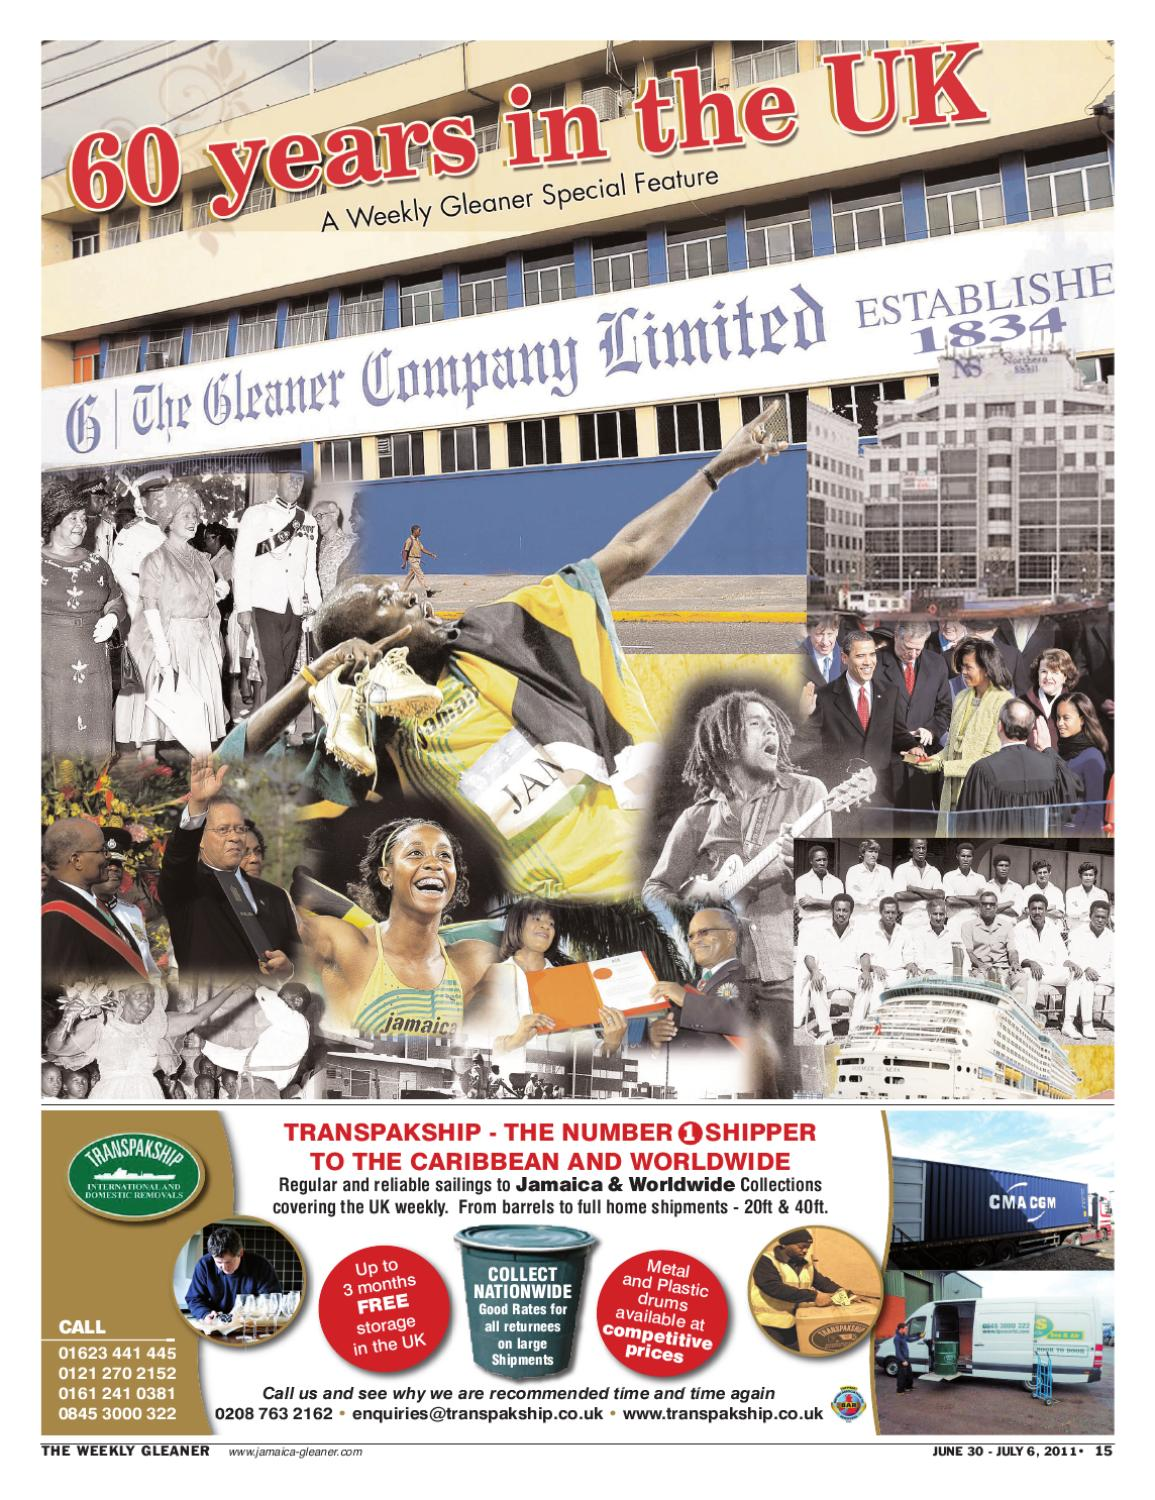 Weekly Gleaner UK 60th Anniversary by The Voice newspaper